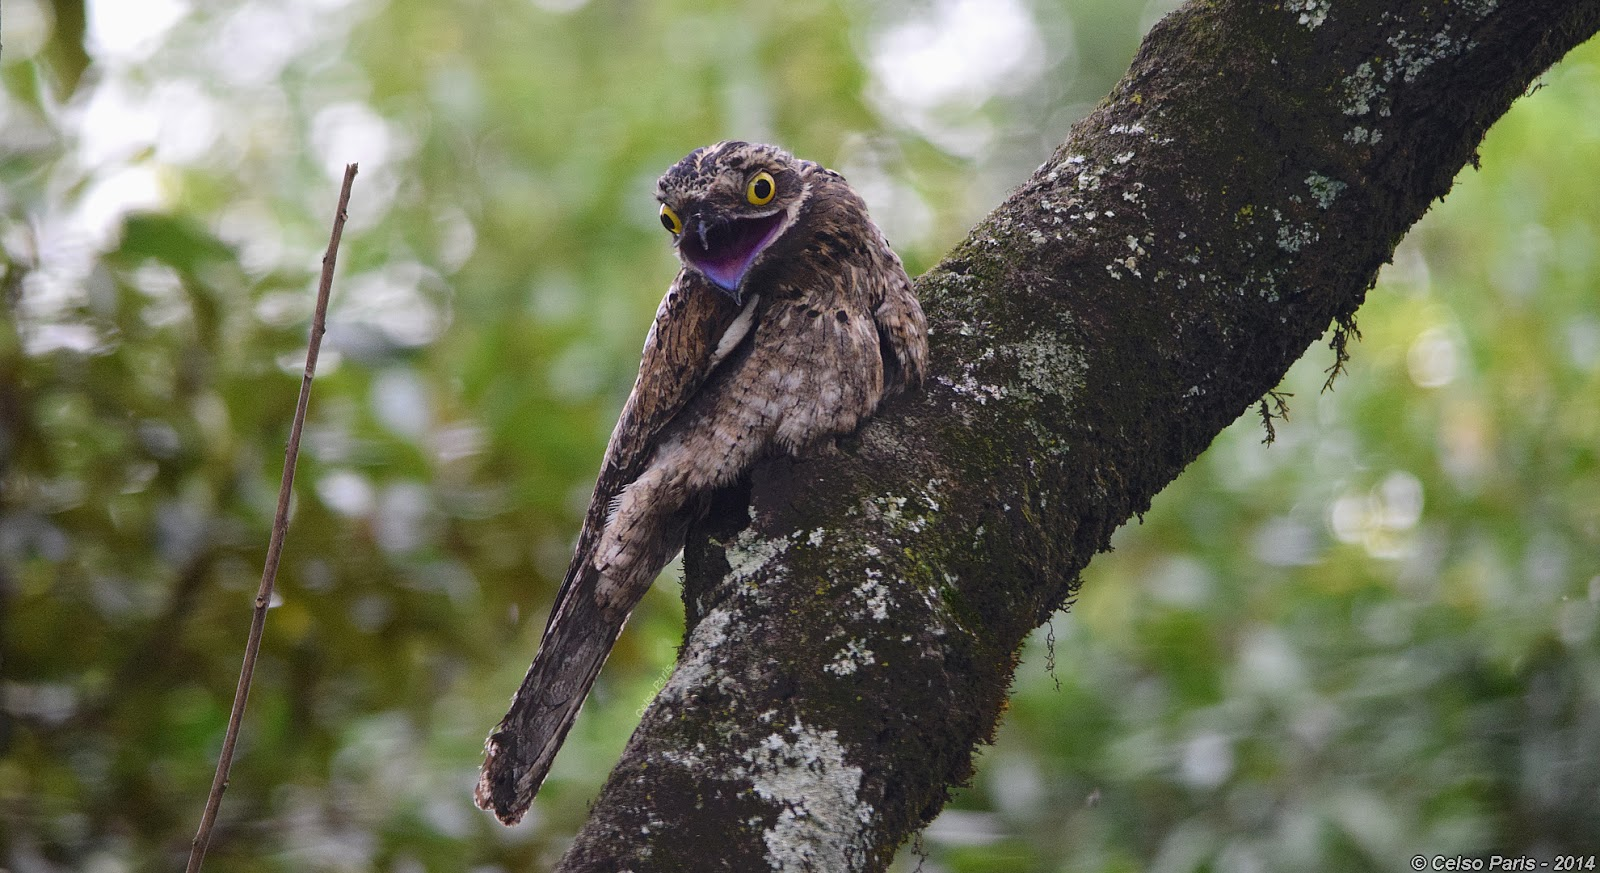 Birds of Southeast Brazil  Common Potoo   Nyctibius griseus cornutus Common Potoo   Nyctibius griseus cornutus